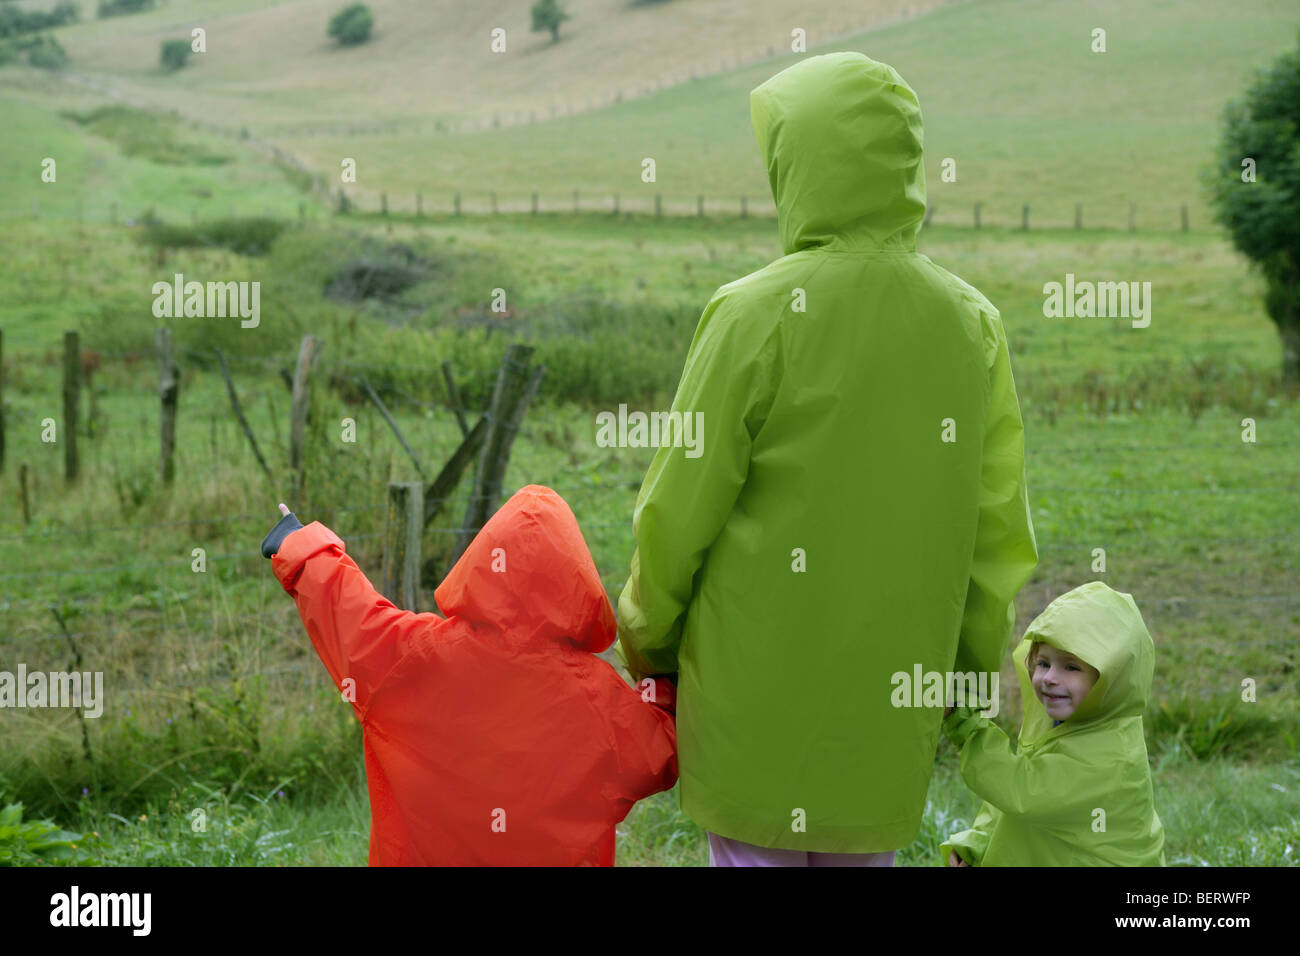 Green meadow with plastic waterproof coat colorful family in front - Stock Image